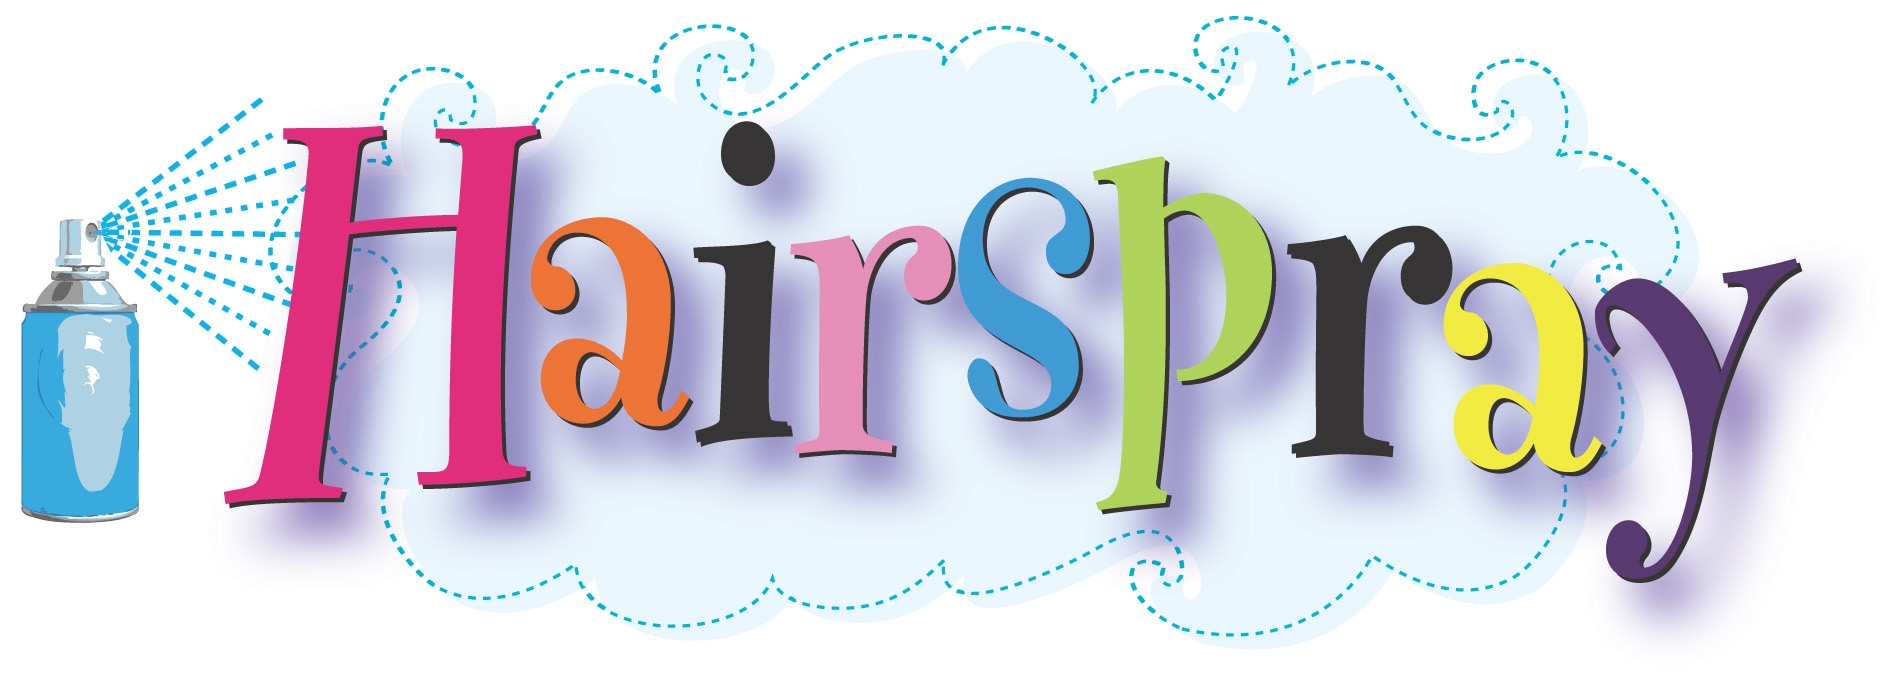 1894x675 Strollers Announce Auditions For Hairspray The Musical